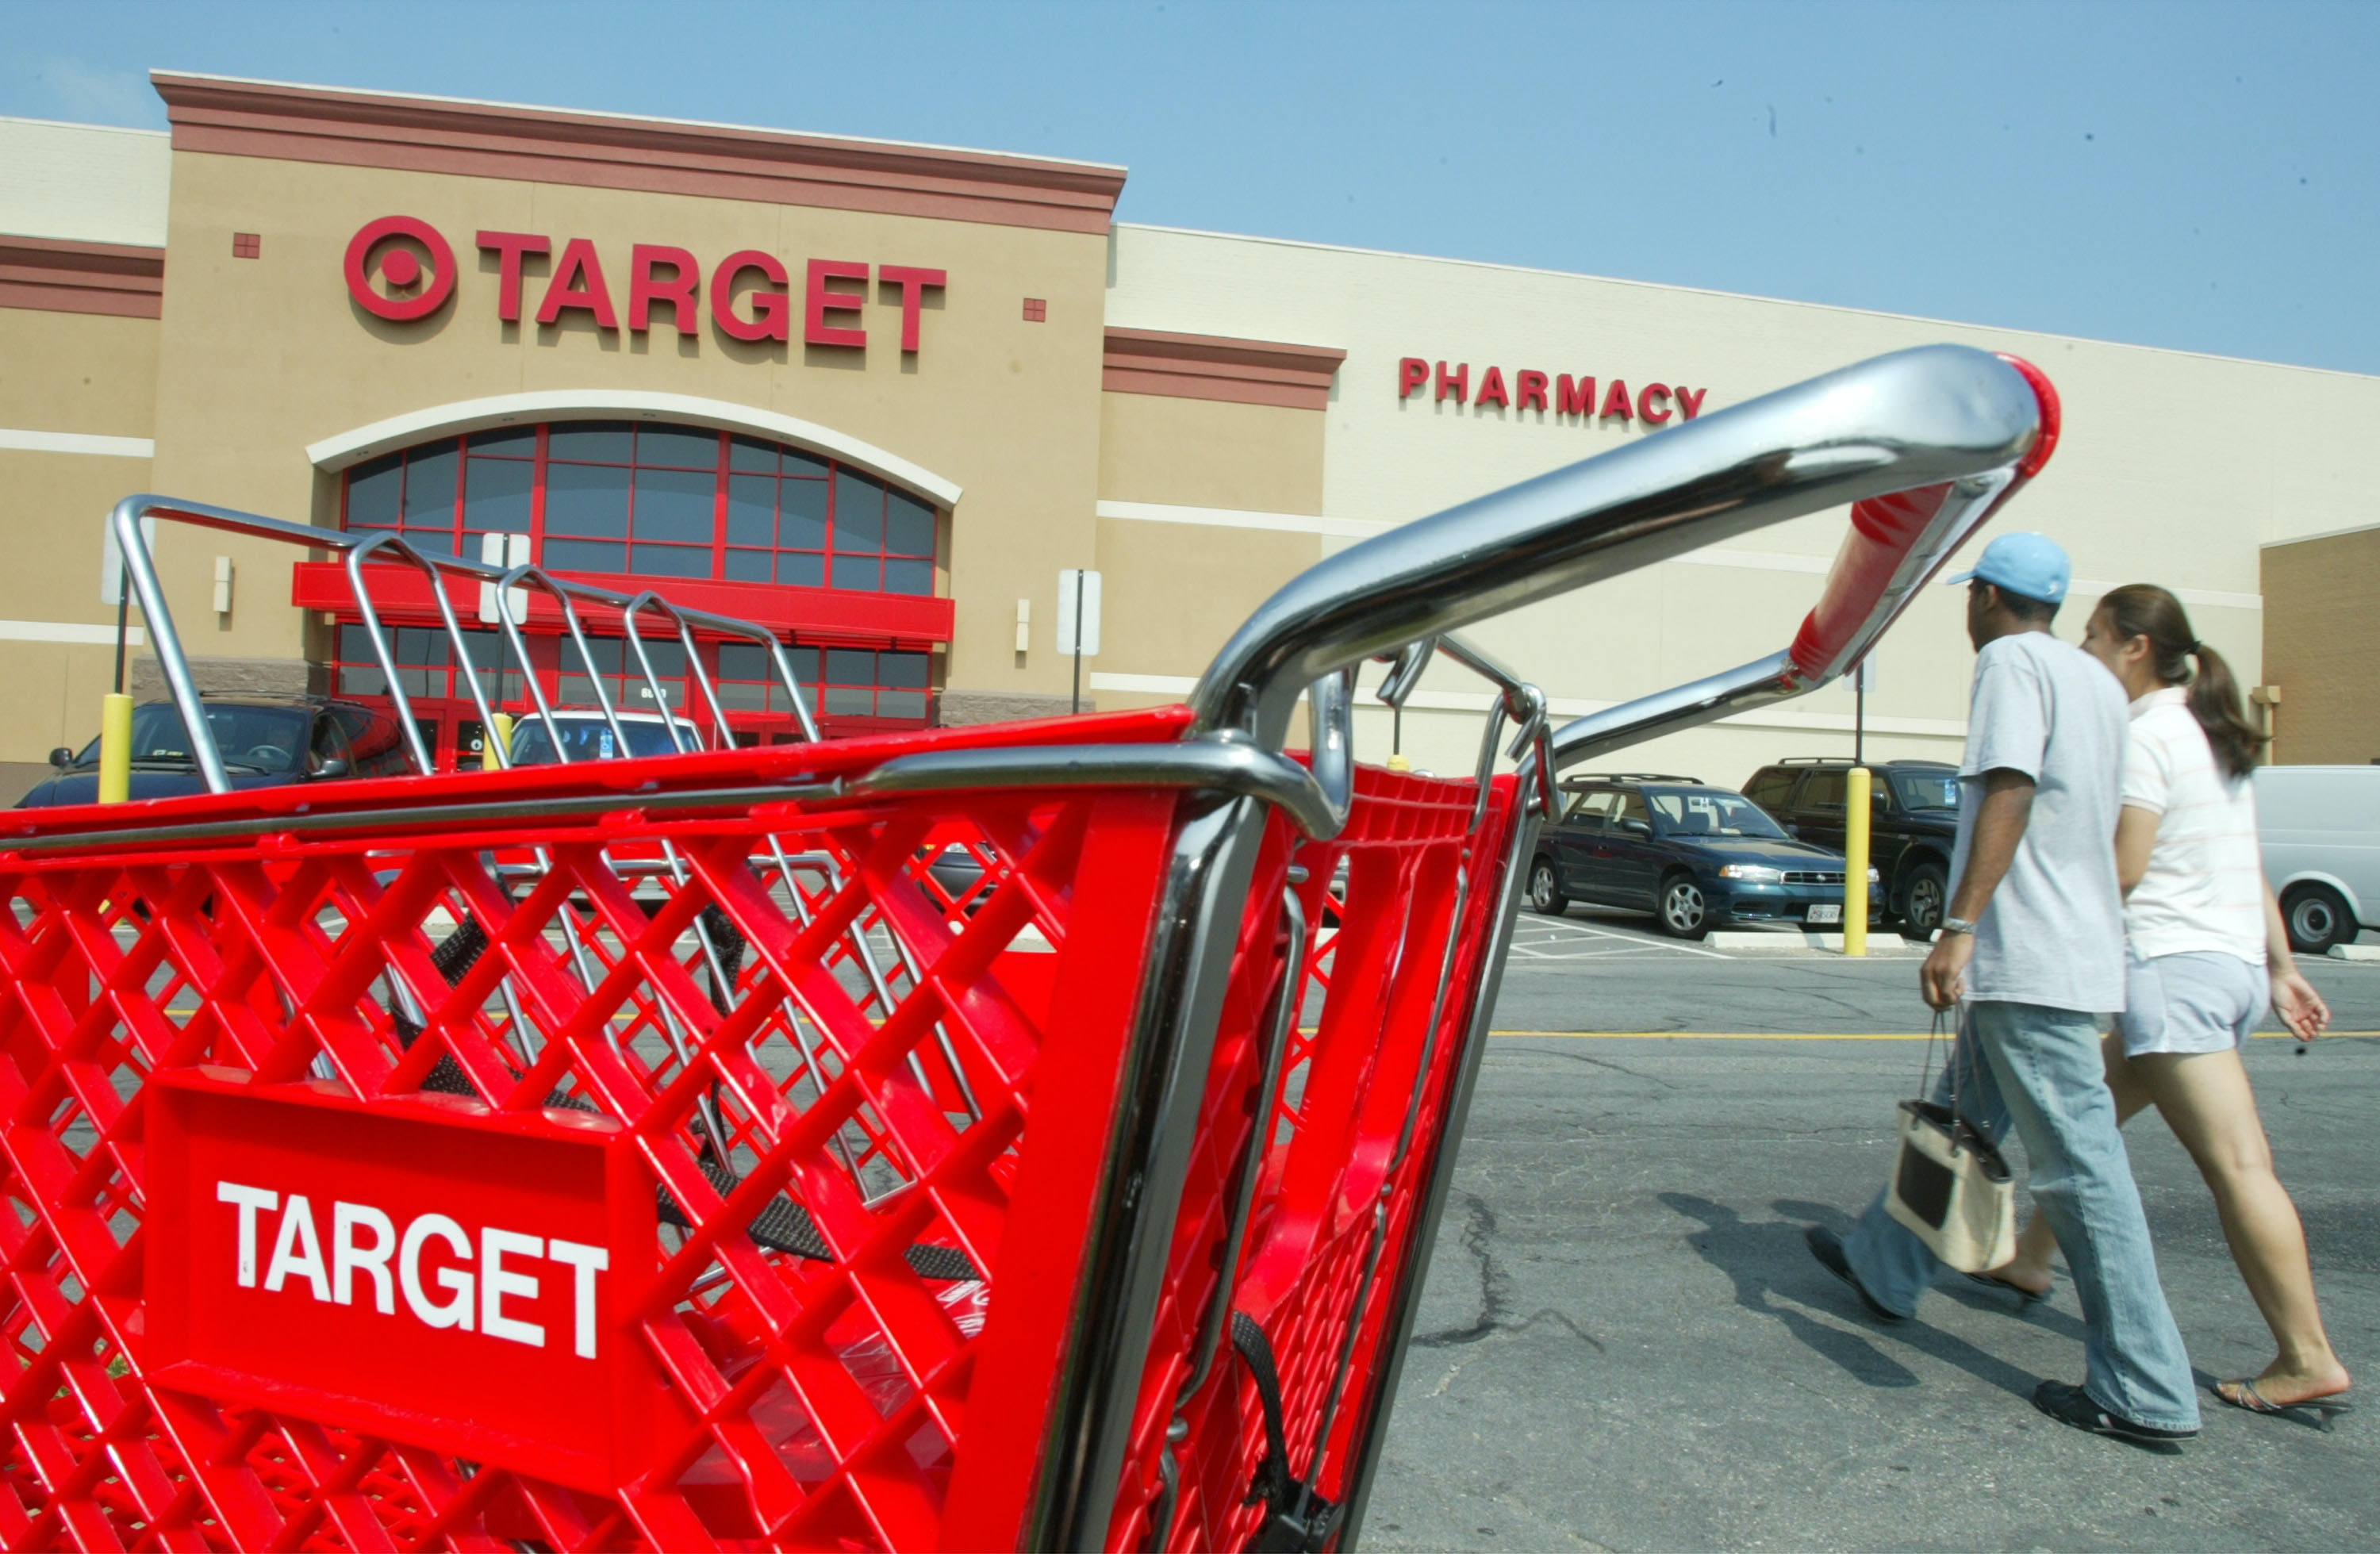 Can You Return A Gift At Target Without A Gift Receipt Their Return